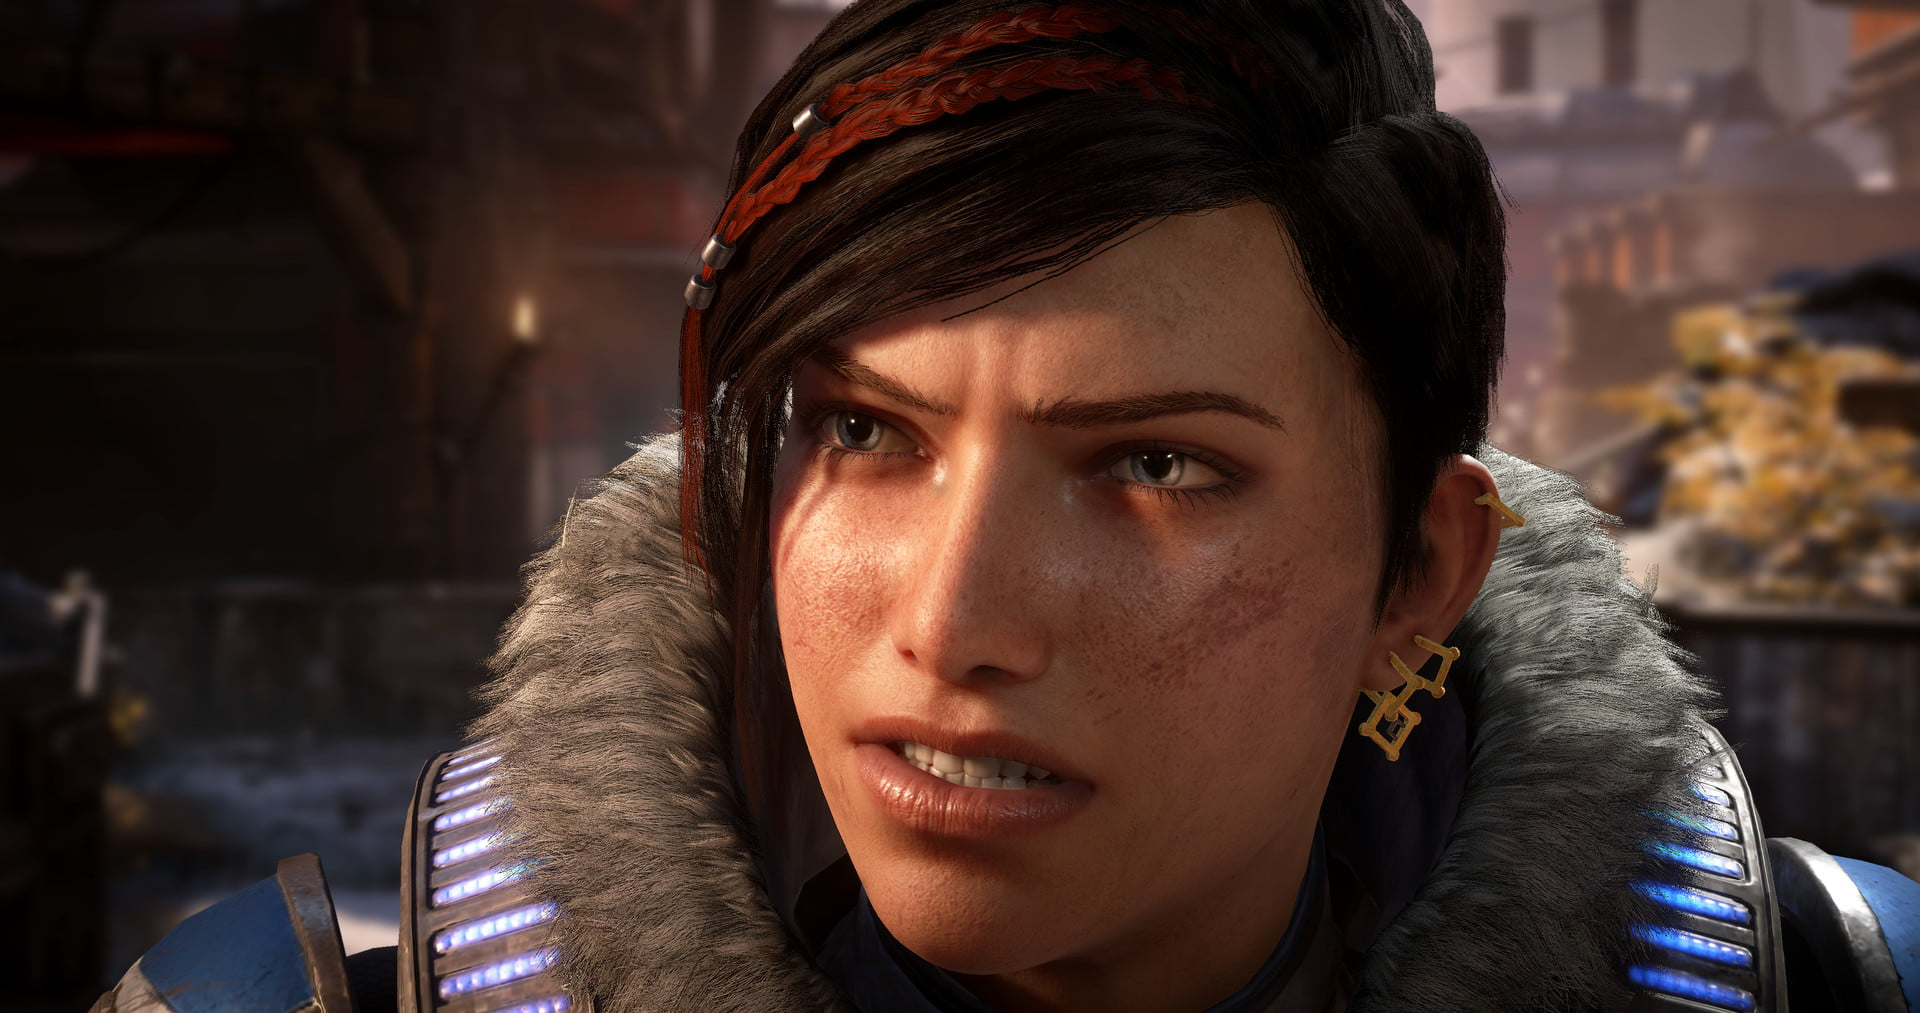 Gears 5 review: A much-needed win for Xbox